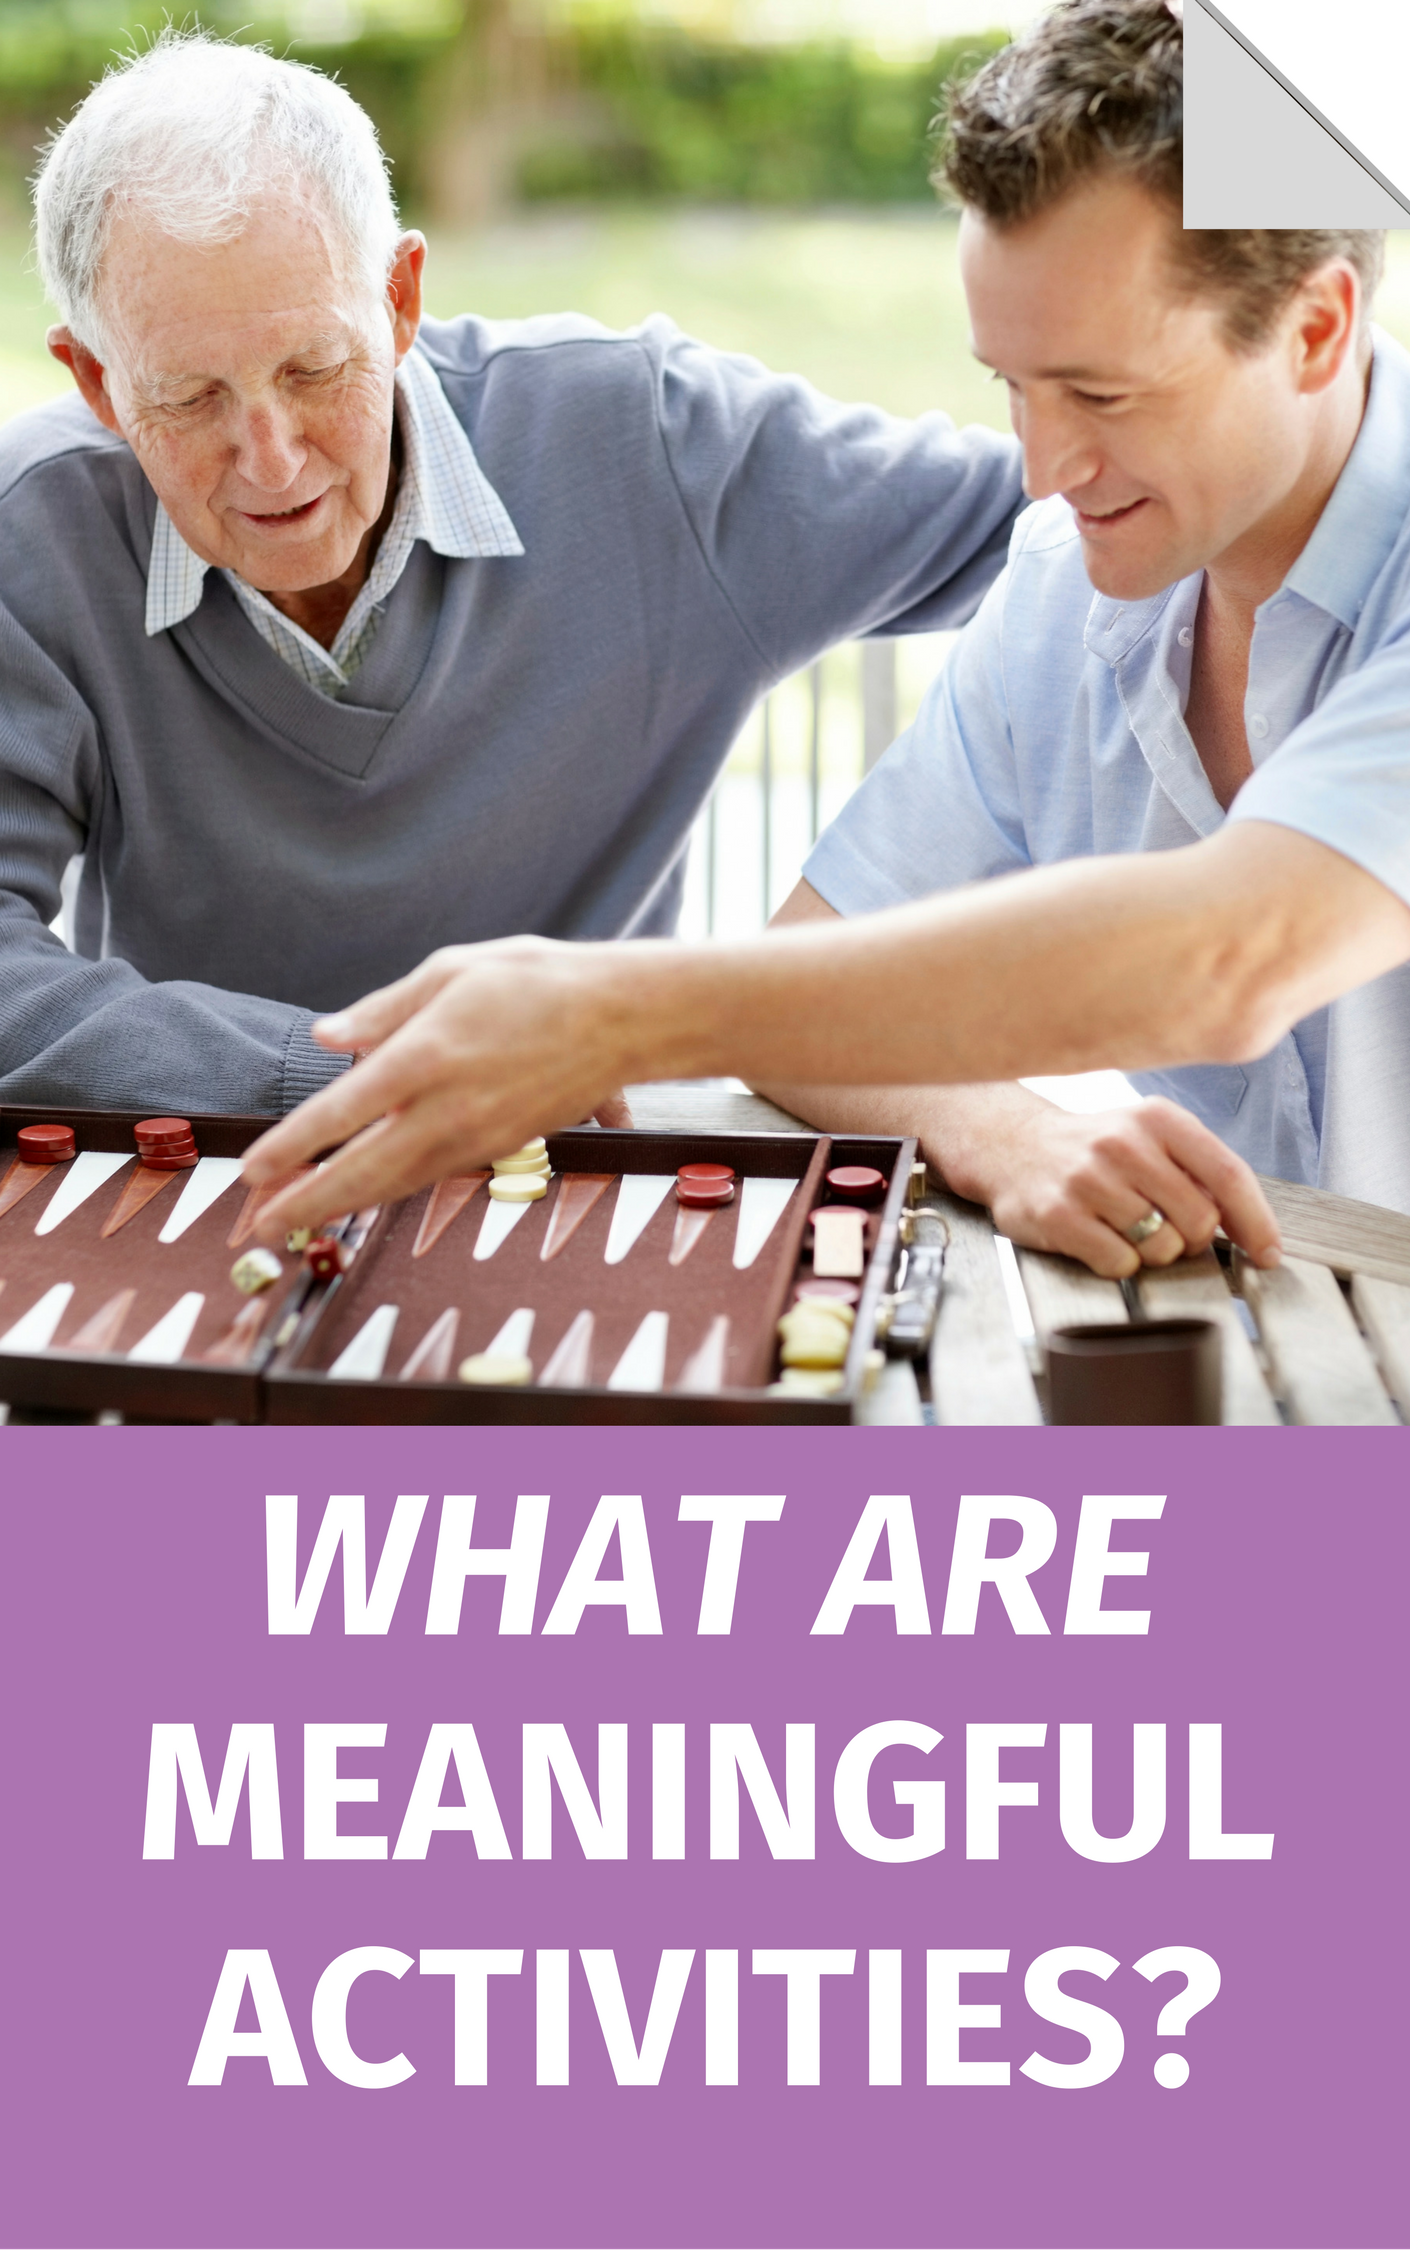 What Are Meaningful Activities